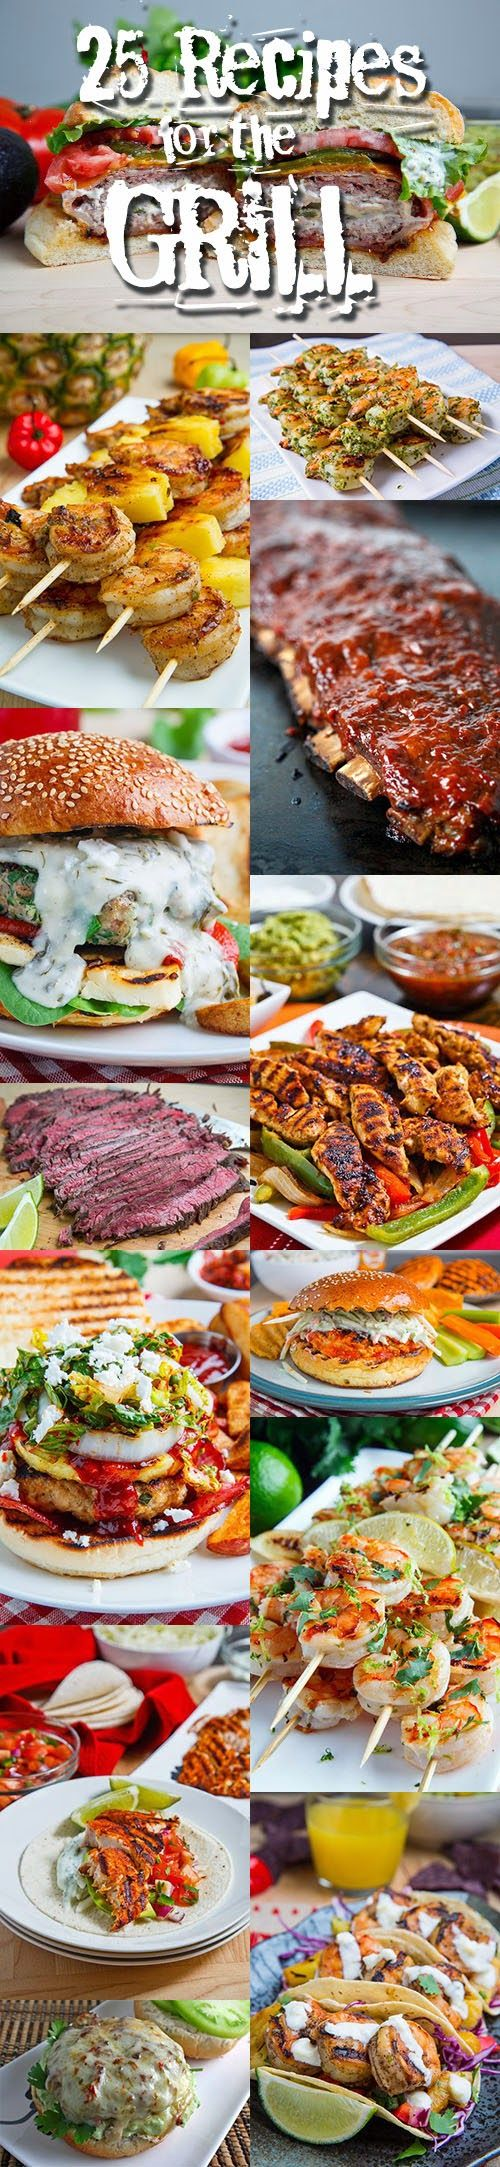 25 Recipes for the Grill - Can't wait to grill